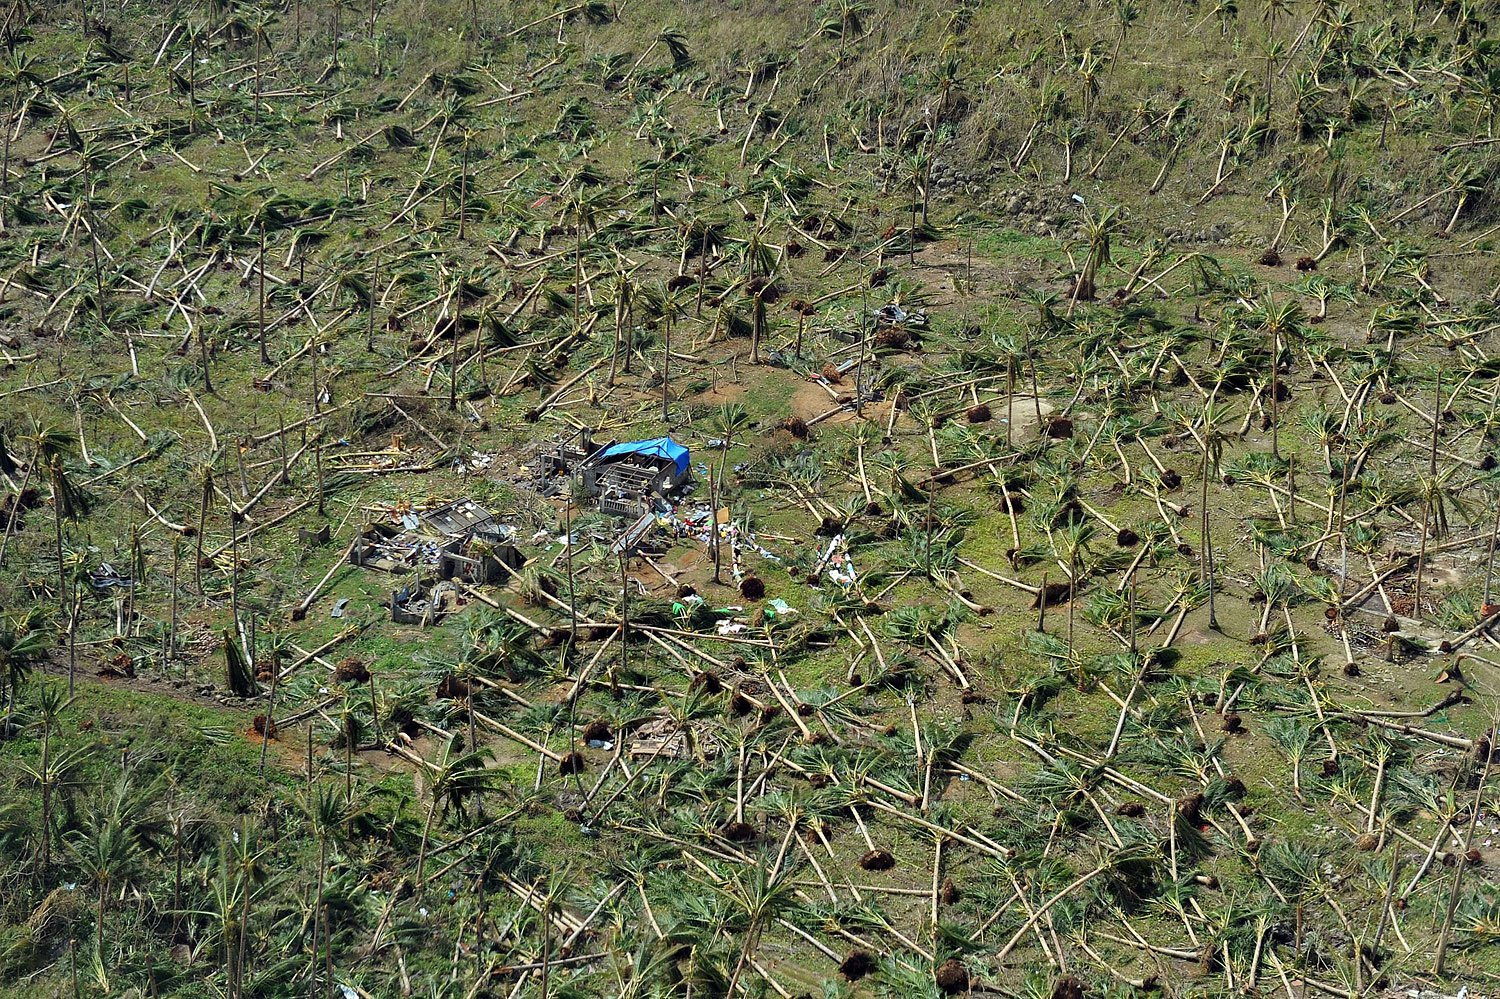 Aerial photo showing uprooted coconut trees on a hill near the town of Guiuan in Eastern Samar province in the central Philippines on November 11, 2013 only days after Super Typhoon Haiyan devastated the town on November 8.